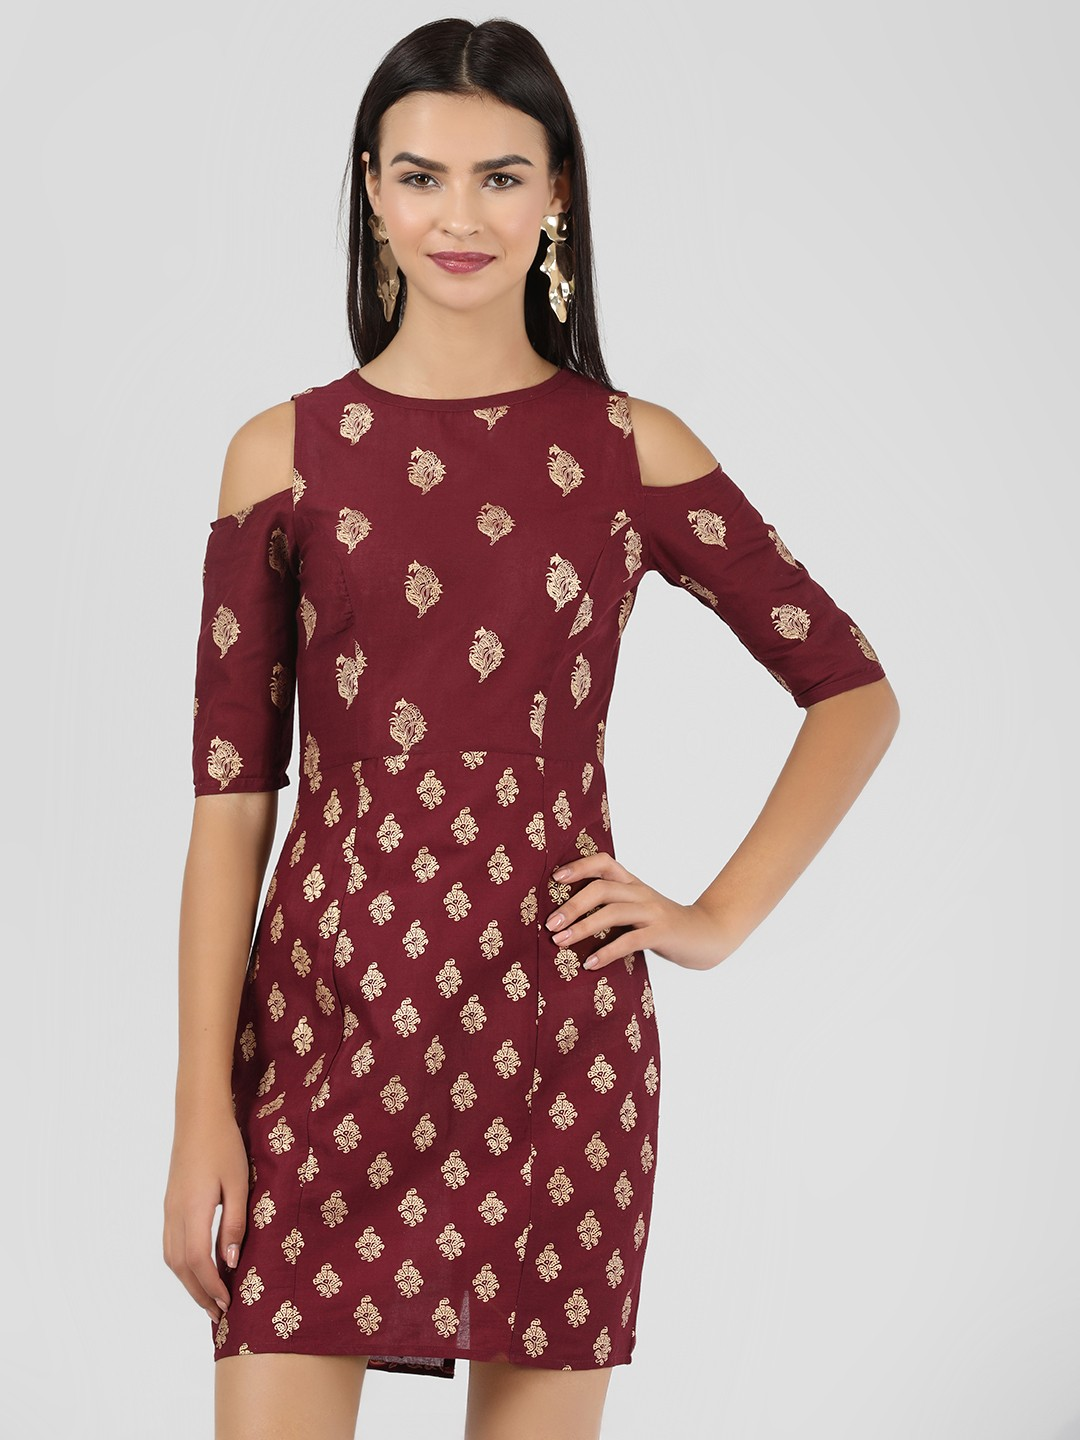 KOOVS Maroon Block Print Cold Shoulder Dress 1